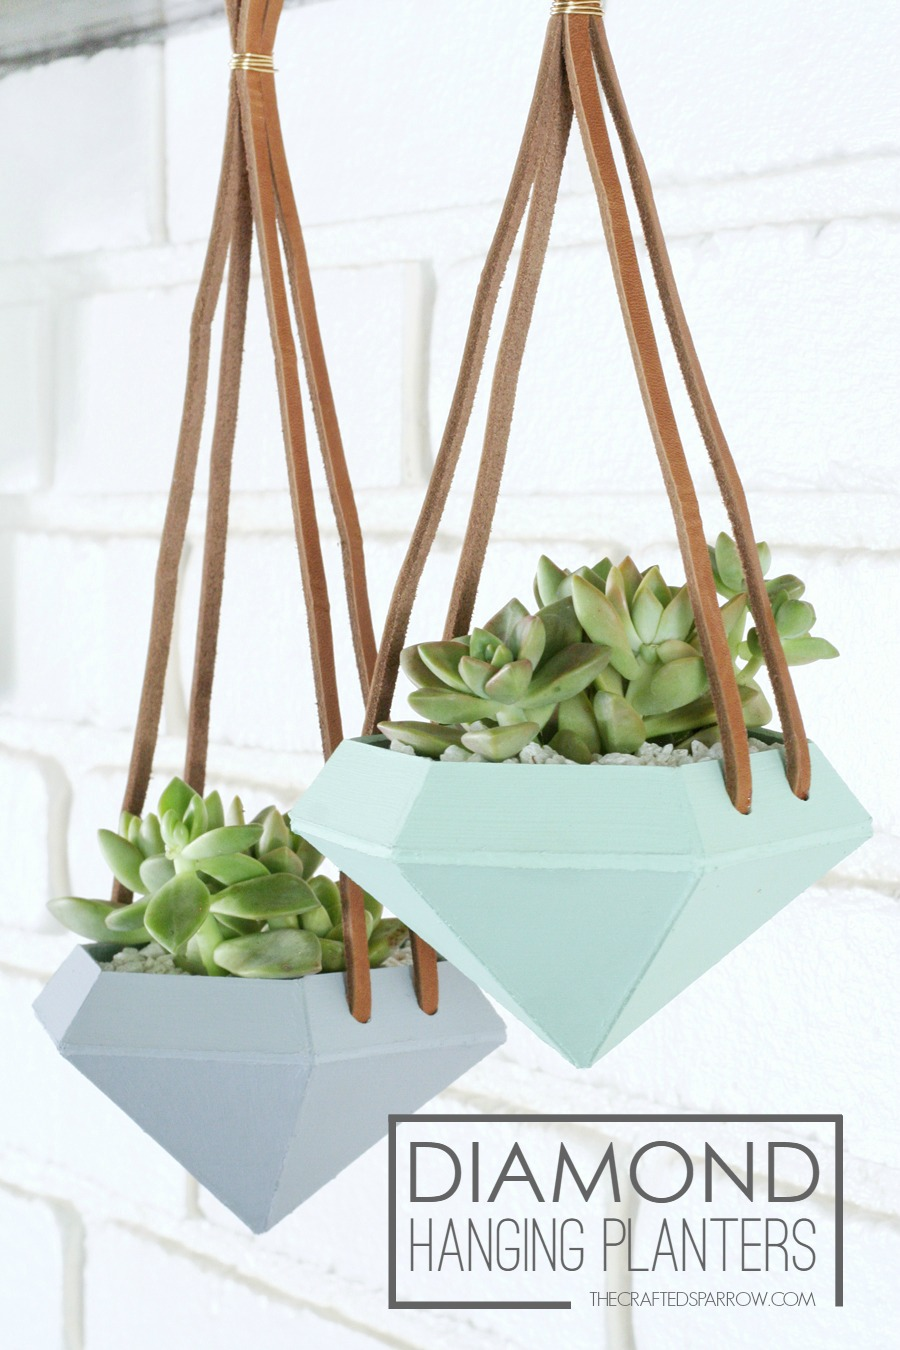 Leather hanging planters